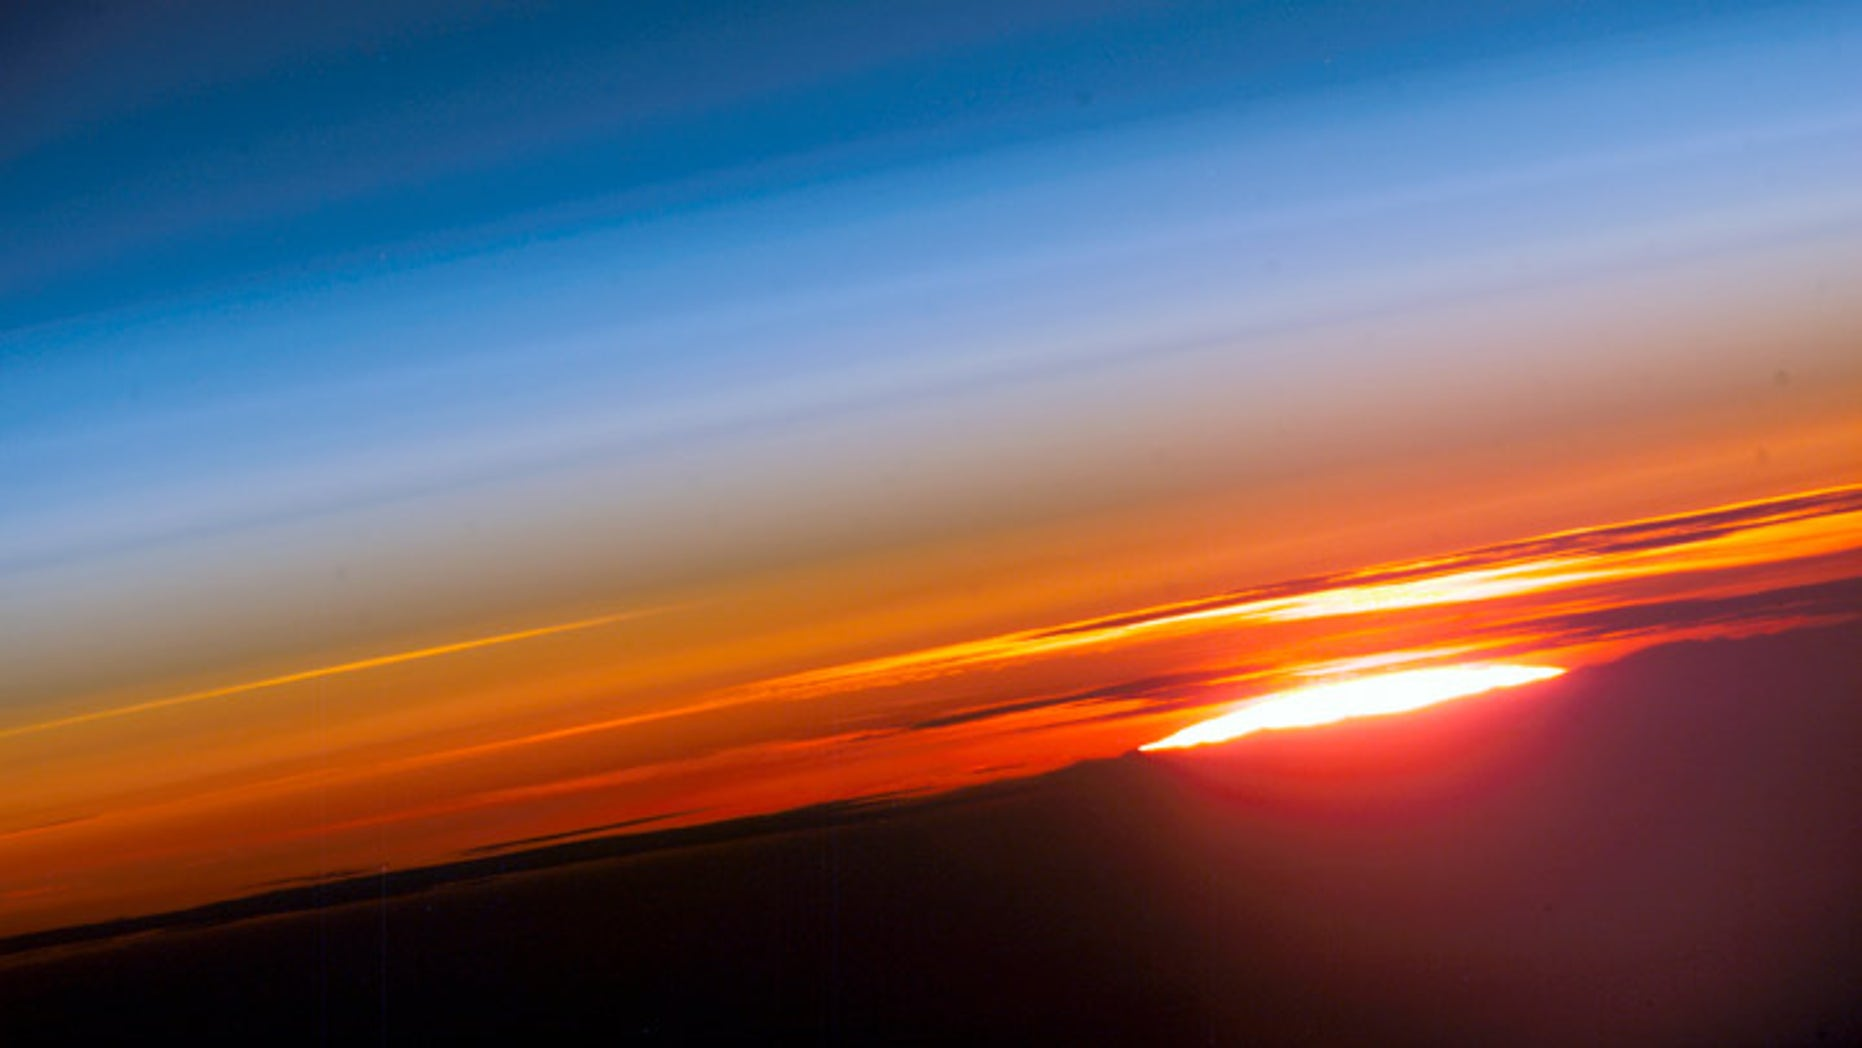 The sun rises over planet Earth in this photo an astronaut captured from the International Space Station.